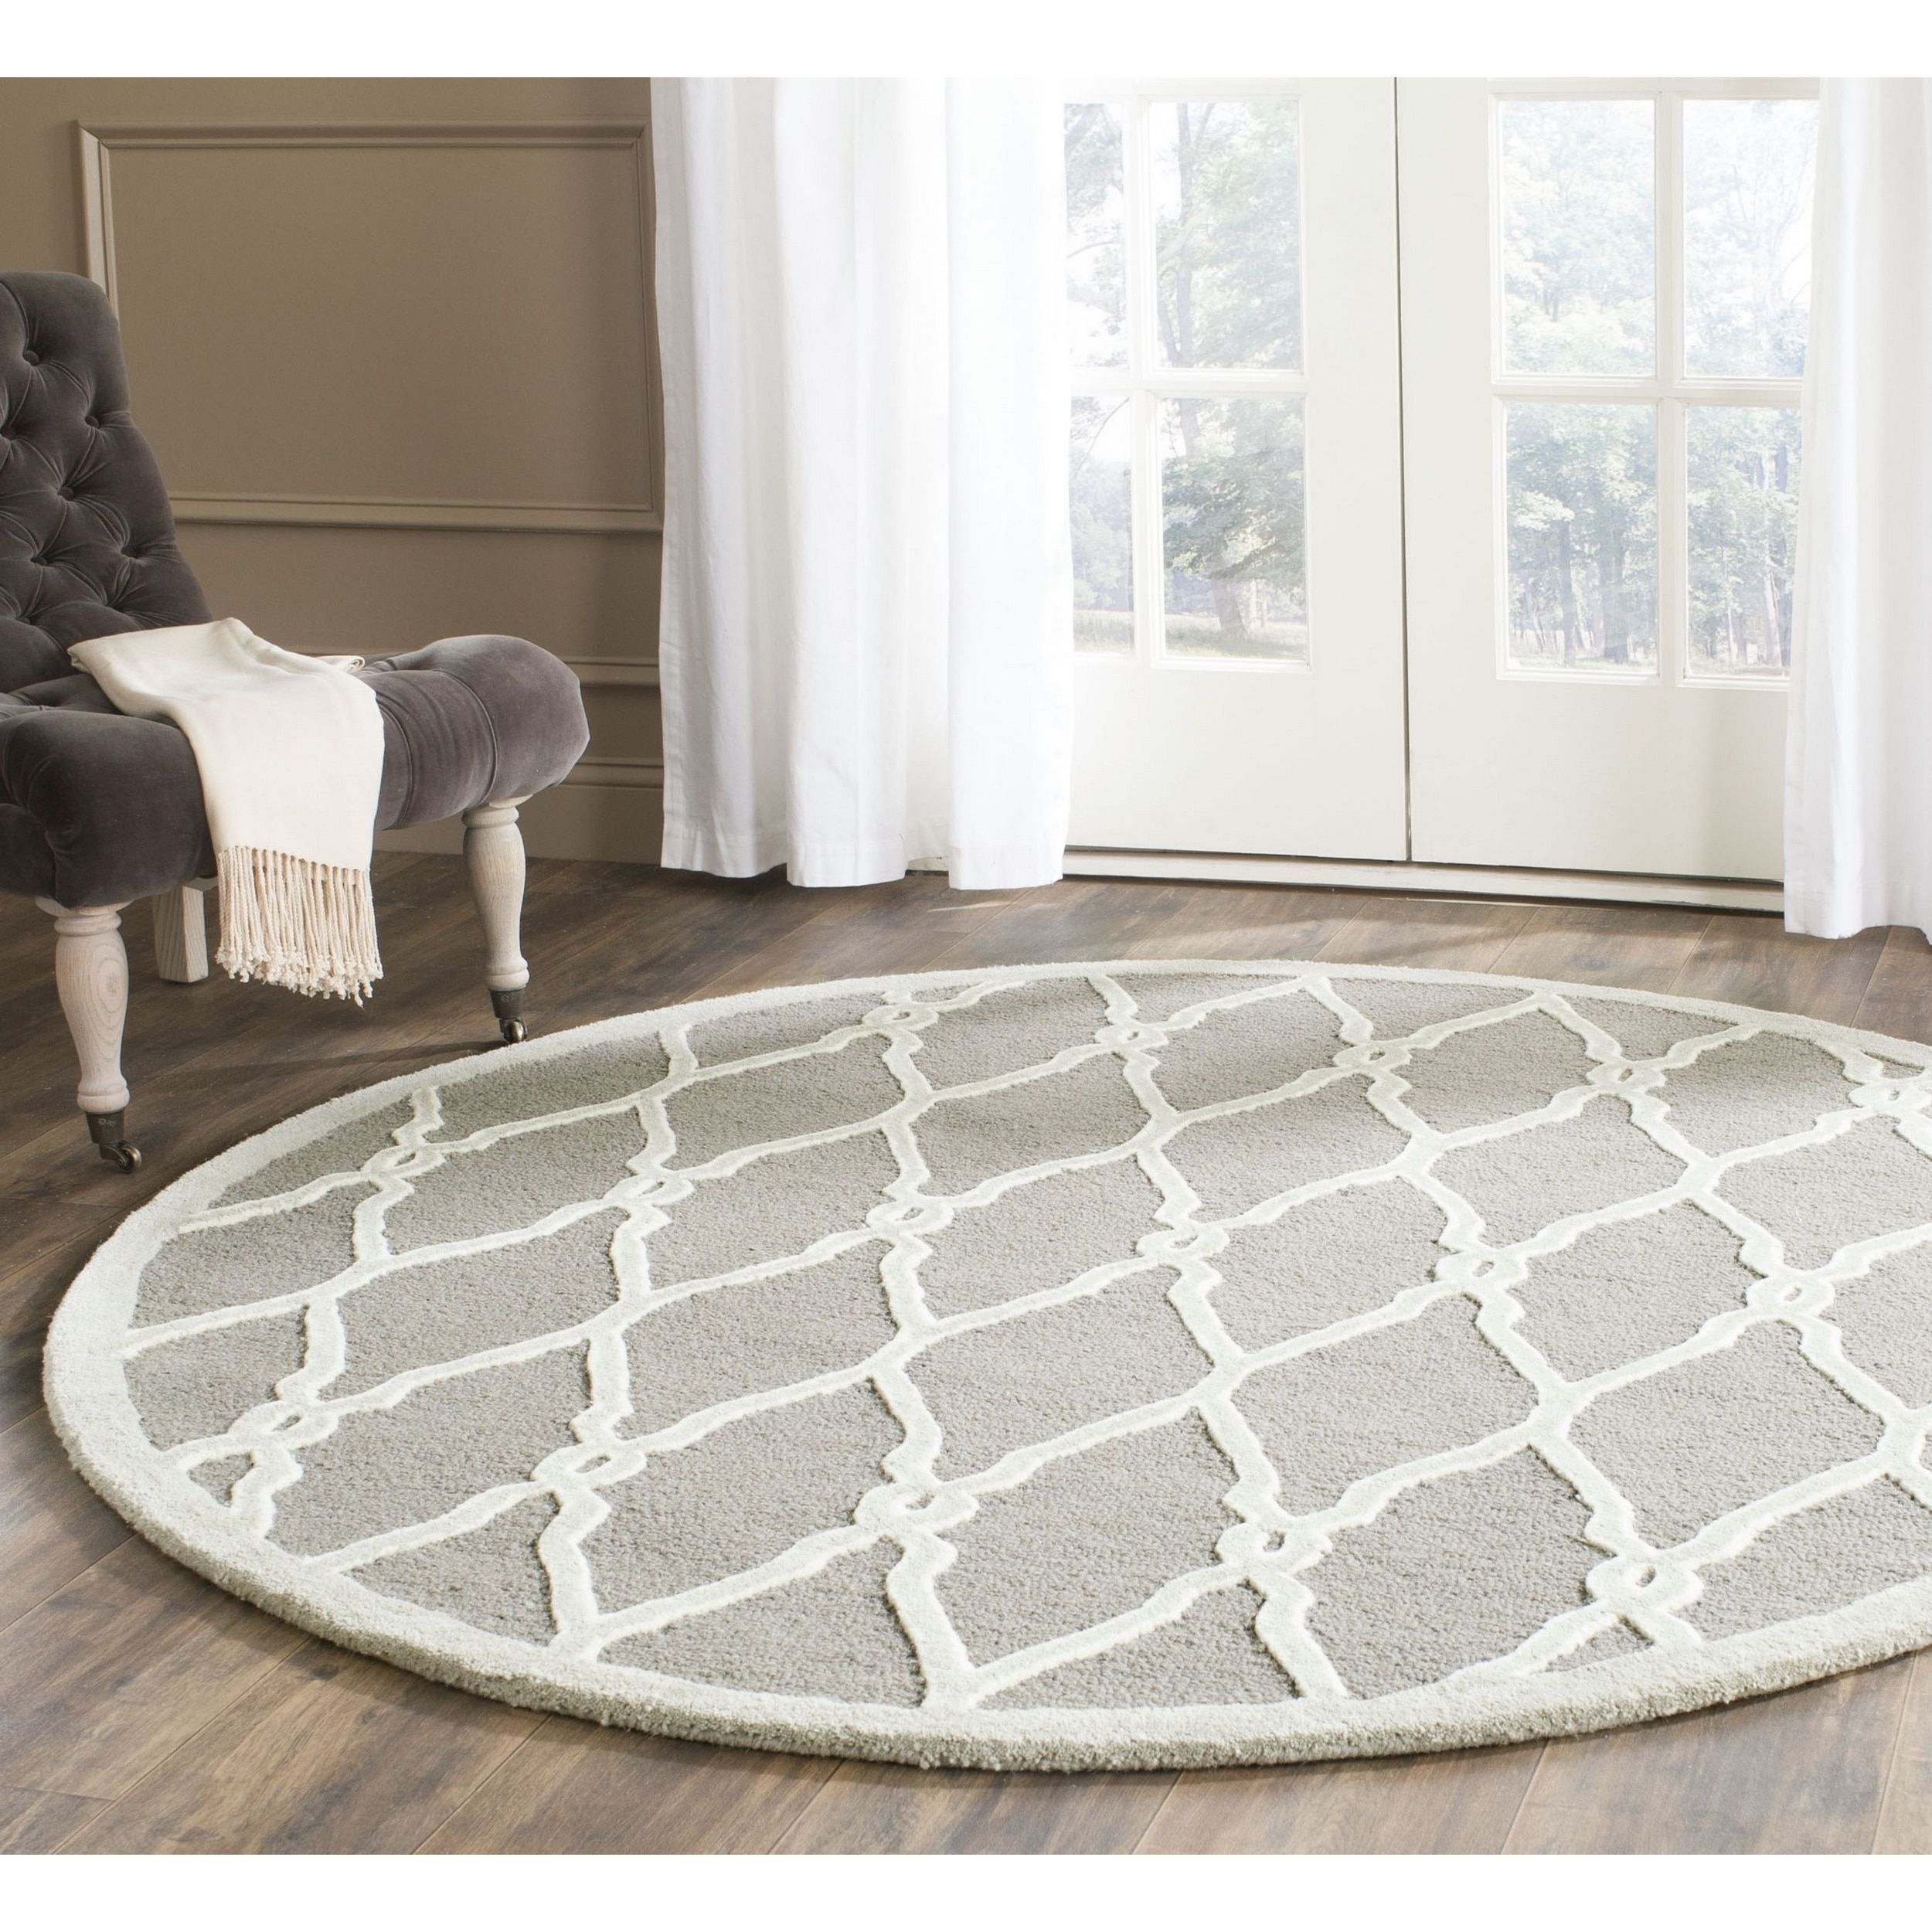 square area archives ft decoration teal feet shag and of rug woven purple grey white rugs wool round ideas luxury awesome remarkable circular size x small foot full fluffy